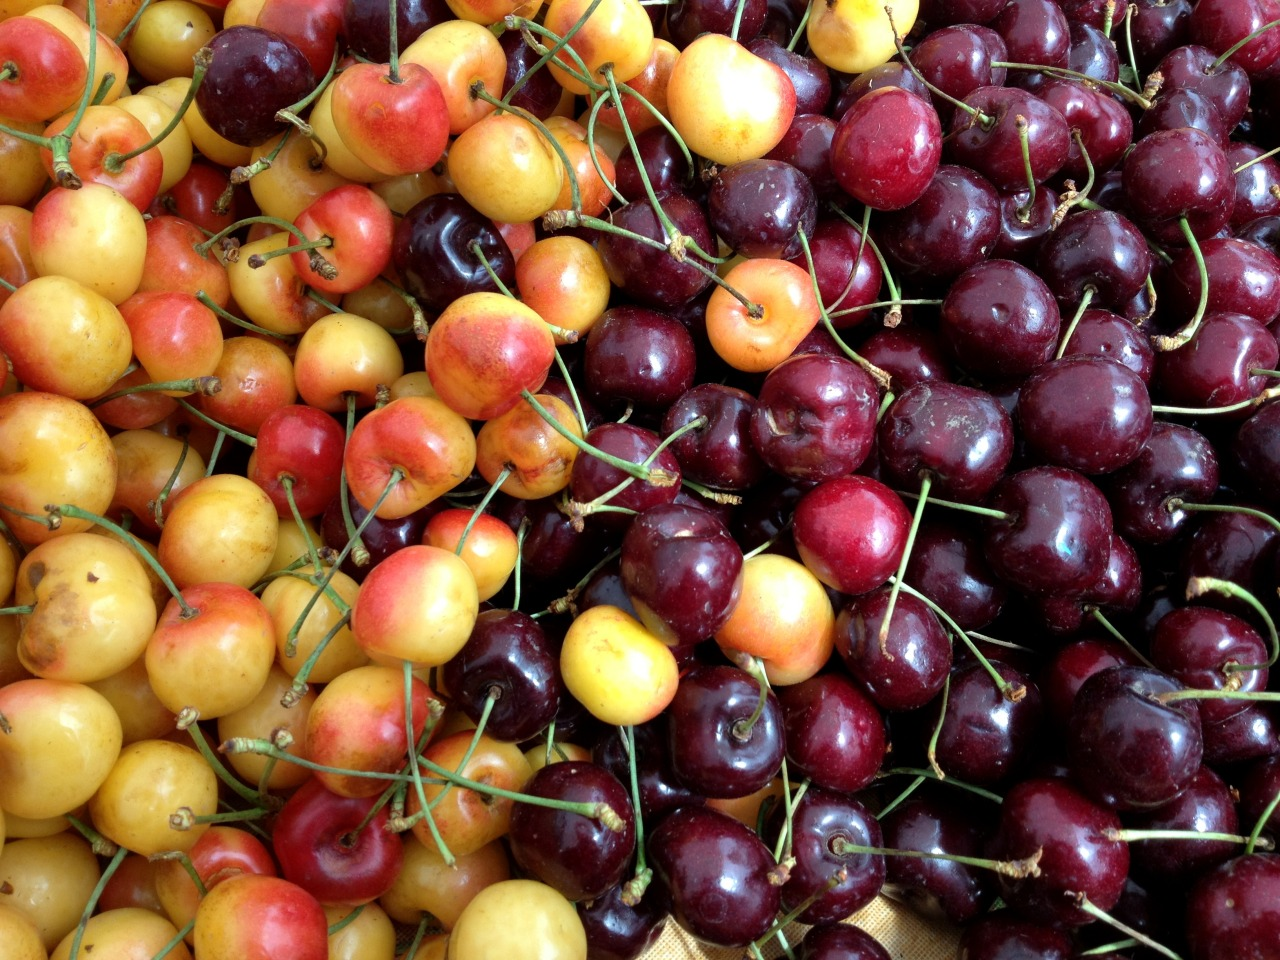 Cherries at a farmers market in Oregon, near Portland. We just ate the last handful back in San Diego.